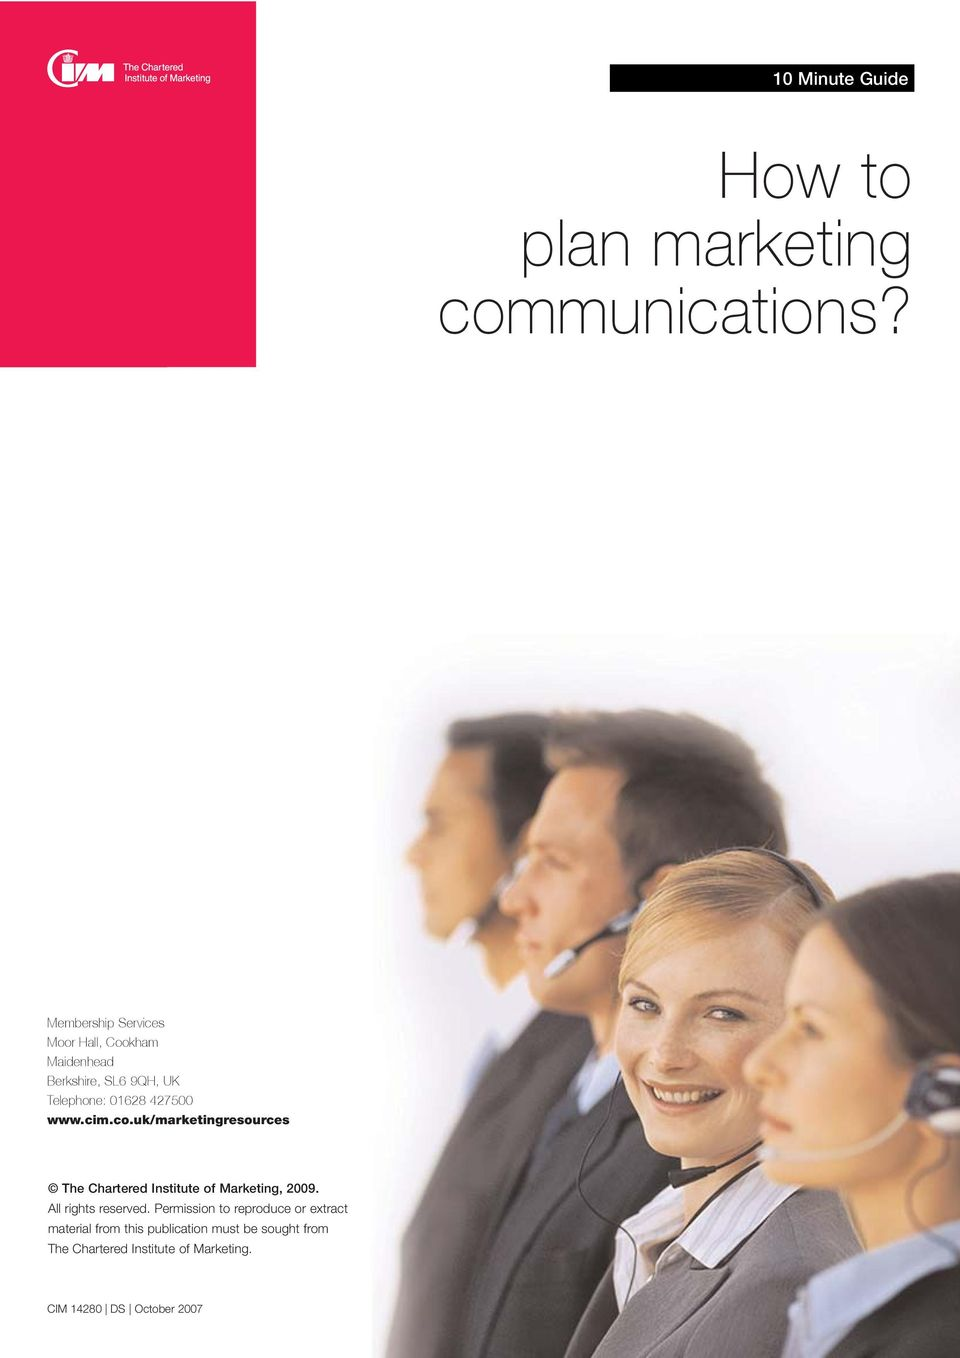 www.cim.co.uk/marketingresources The Chartered Institute of Marketing, 2009. All rights reserved.